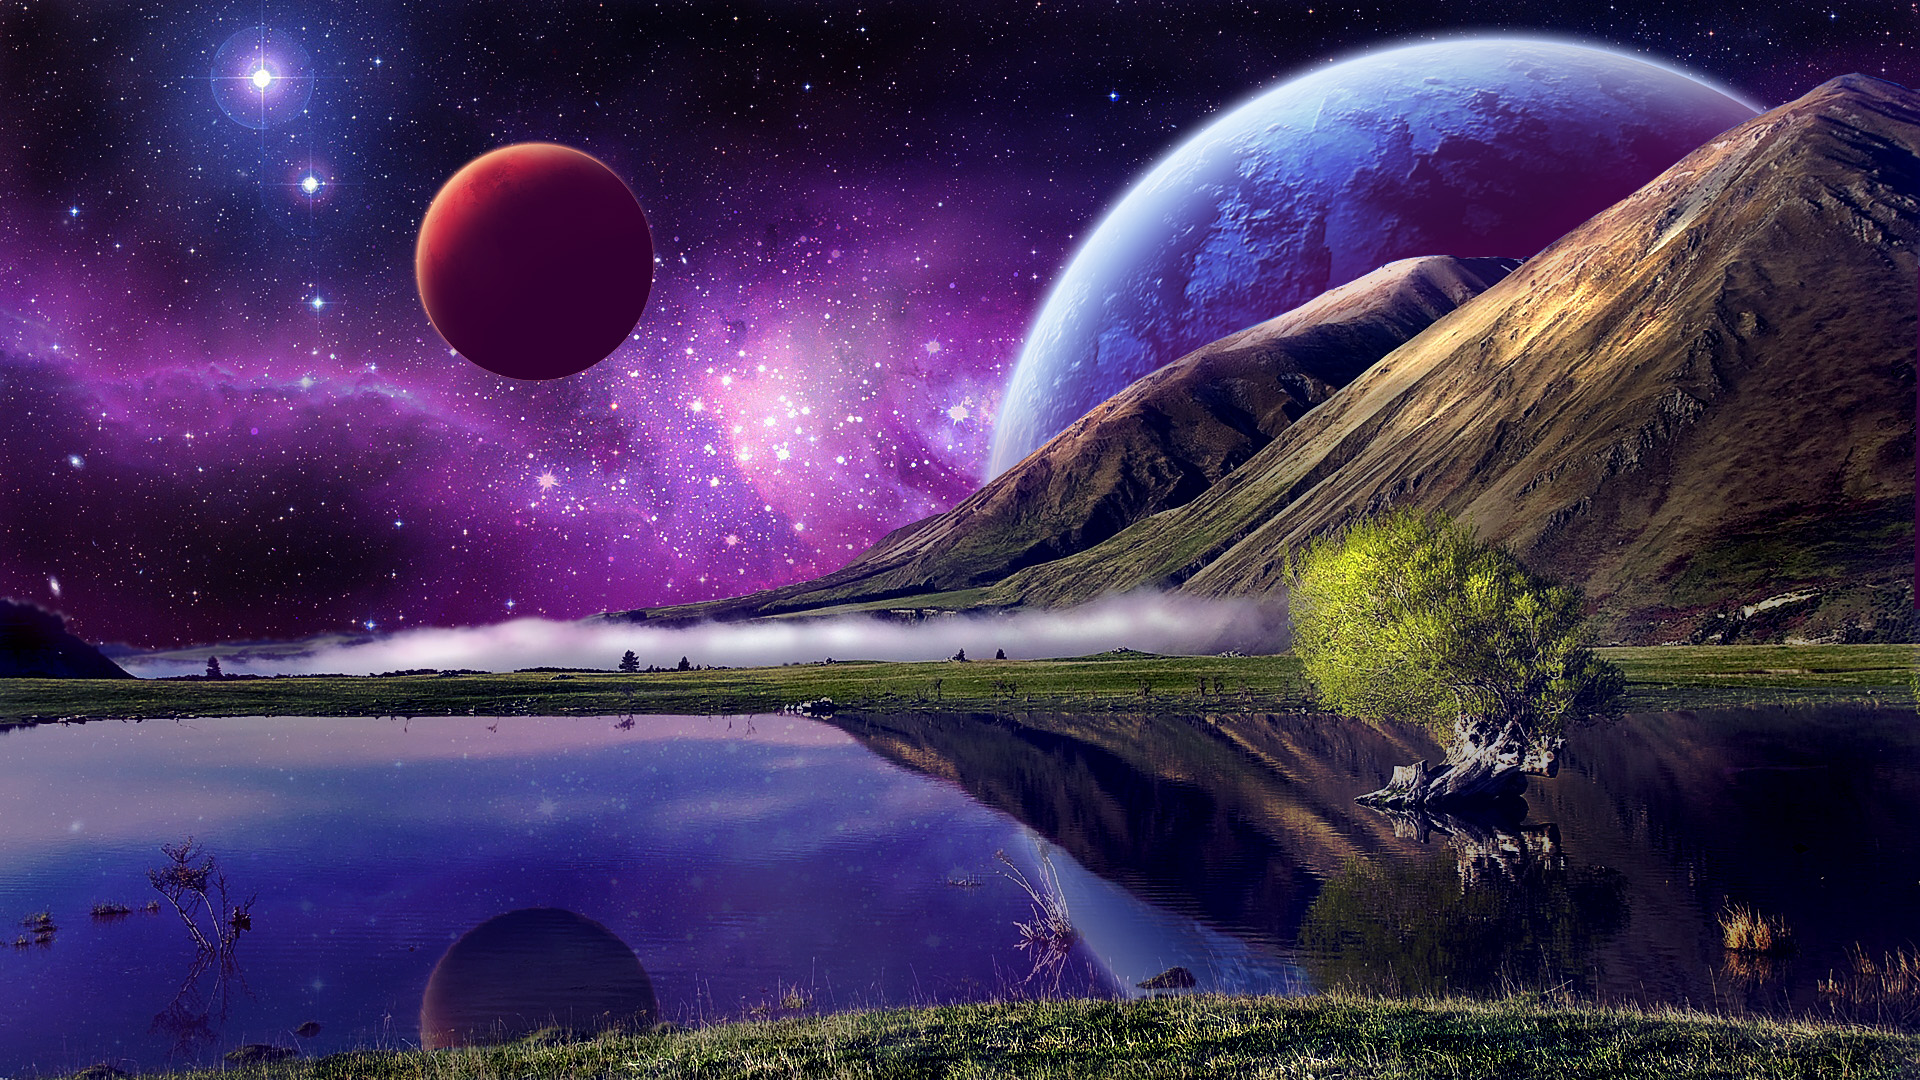 Epic Space Wallpapers hd 1080p images